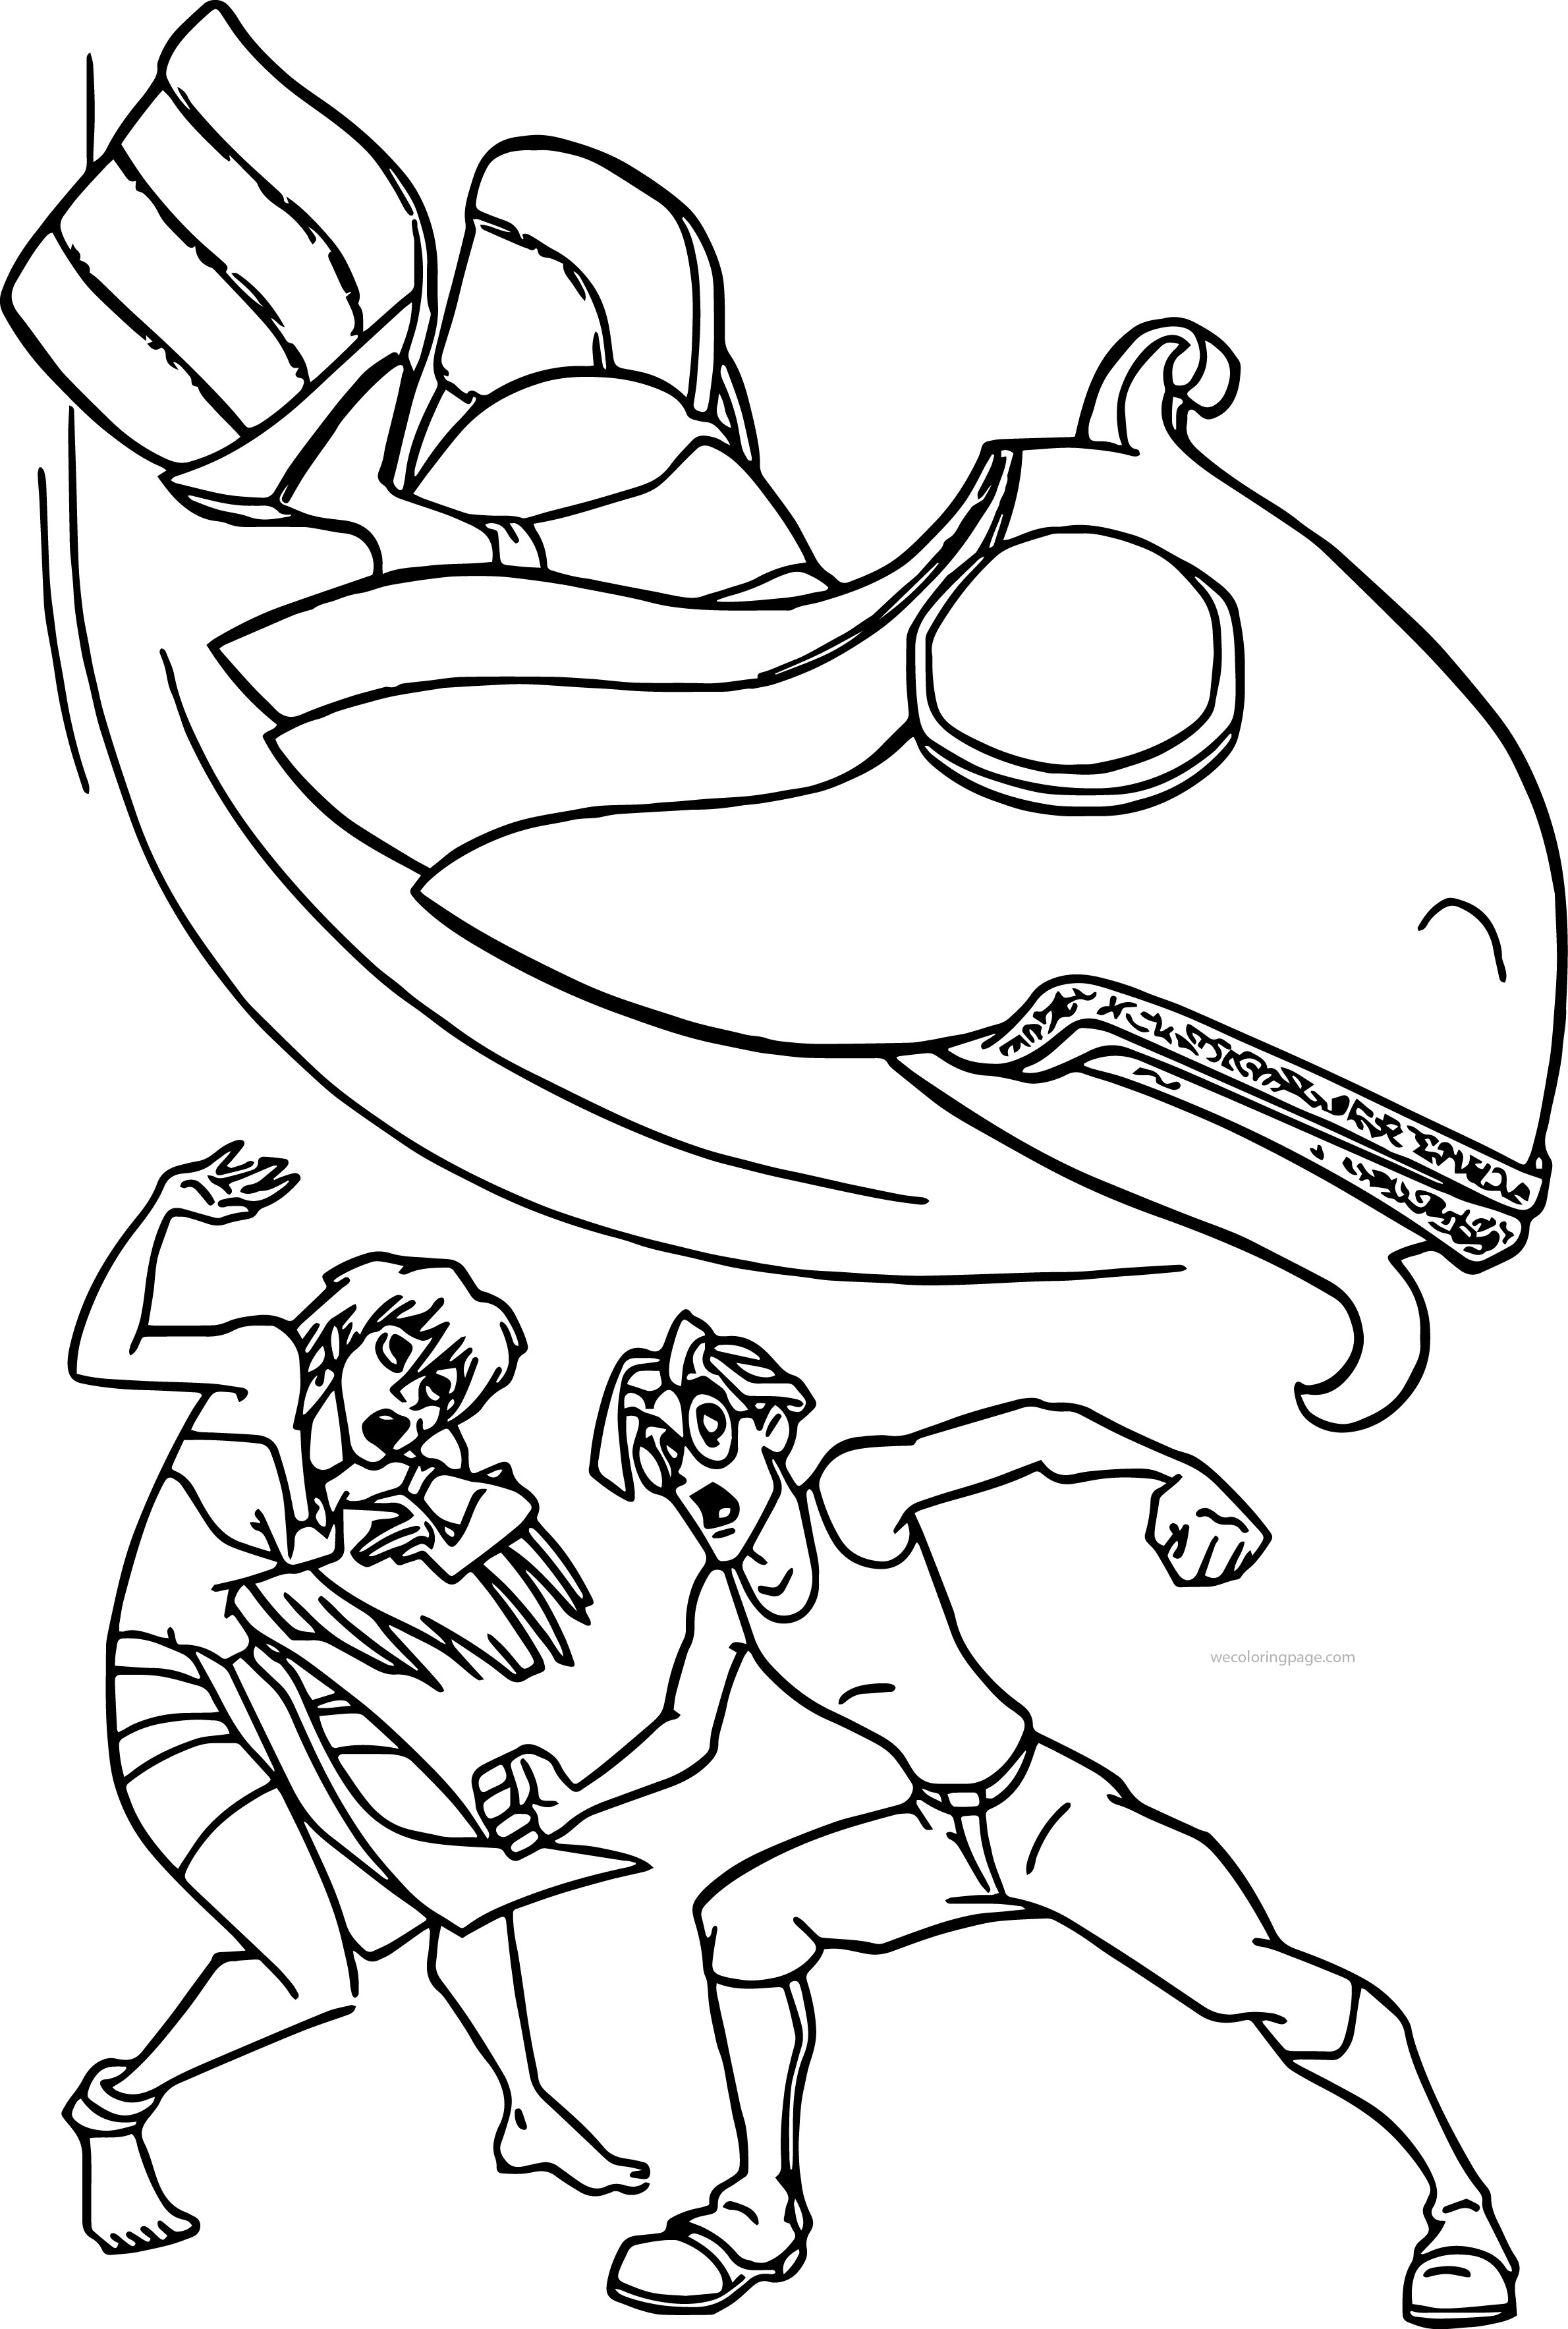 Atlantis The Lost Empire Adventure Coloring Page